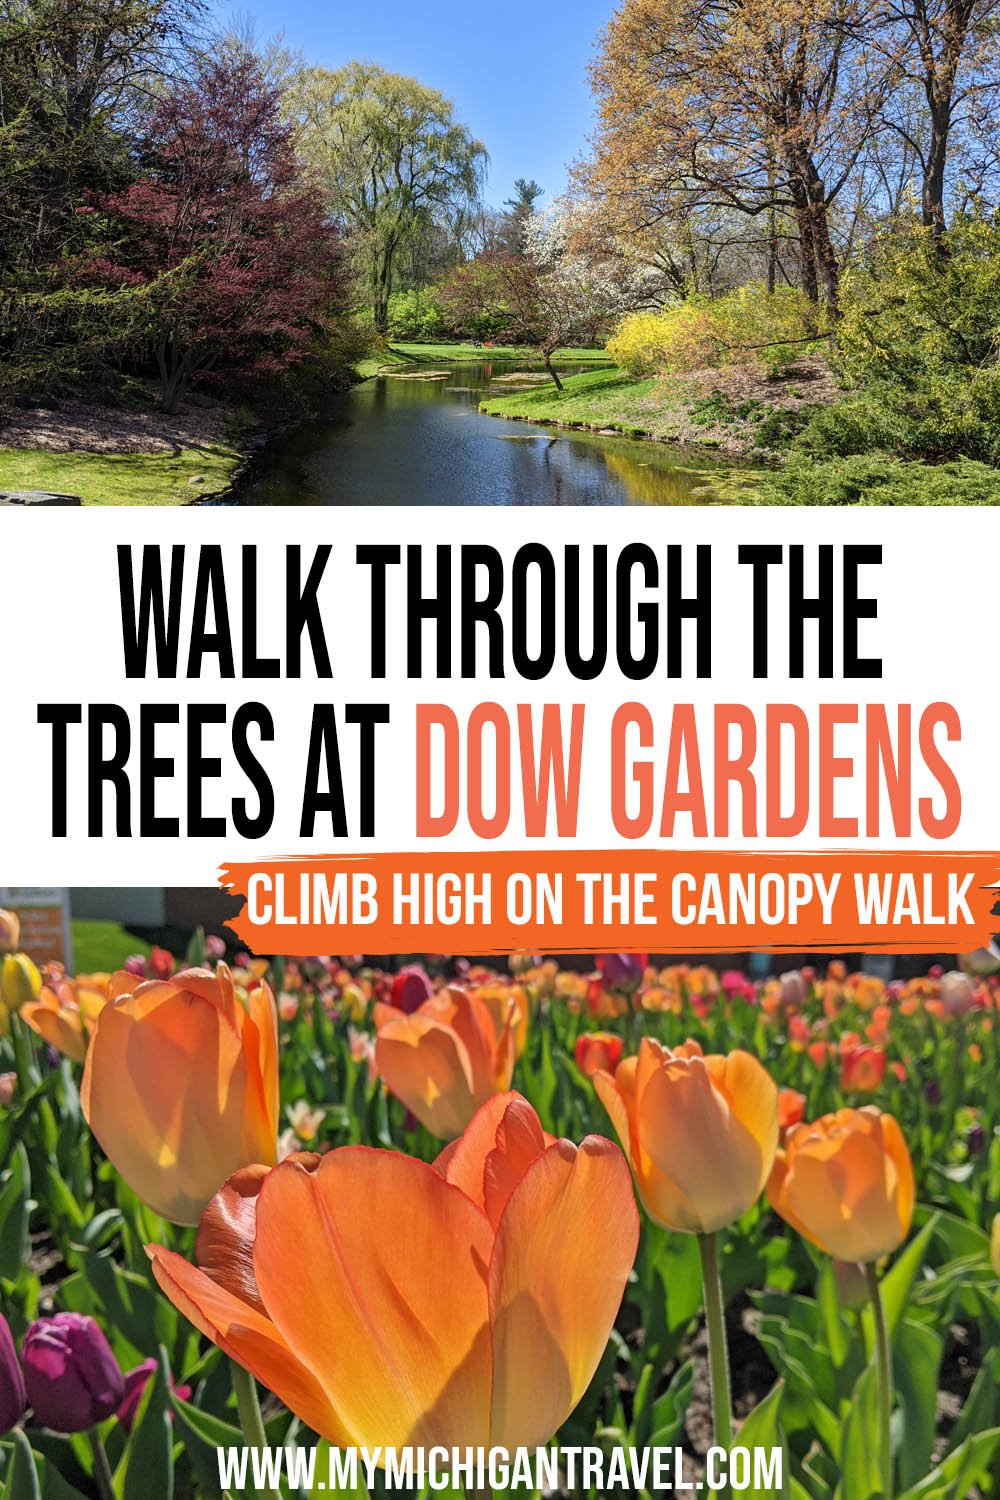 """Photo collage of a peaceful river surrounded by budding trees and a closeup of yellow-orange tulips in bloom with text overlay reading, """"walk through the trees at Dow Gardens - climb high on the canopy walk"""""""